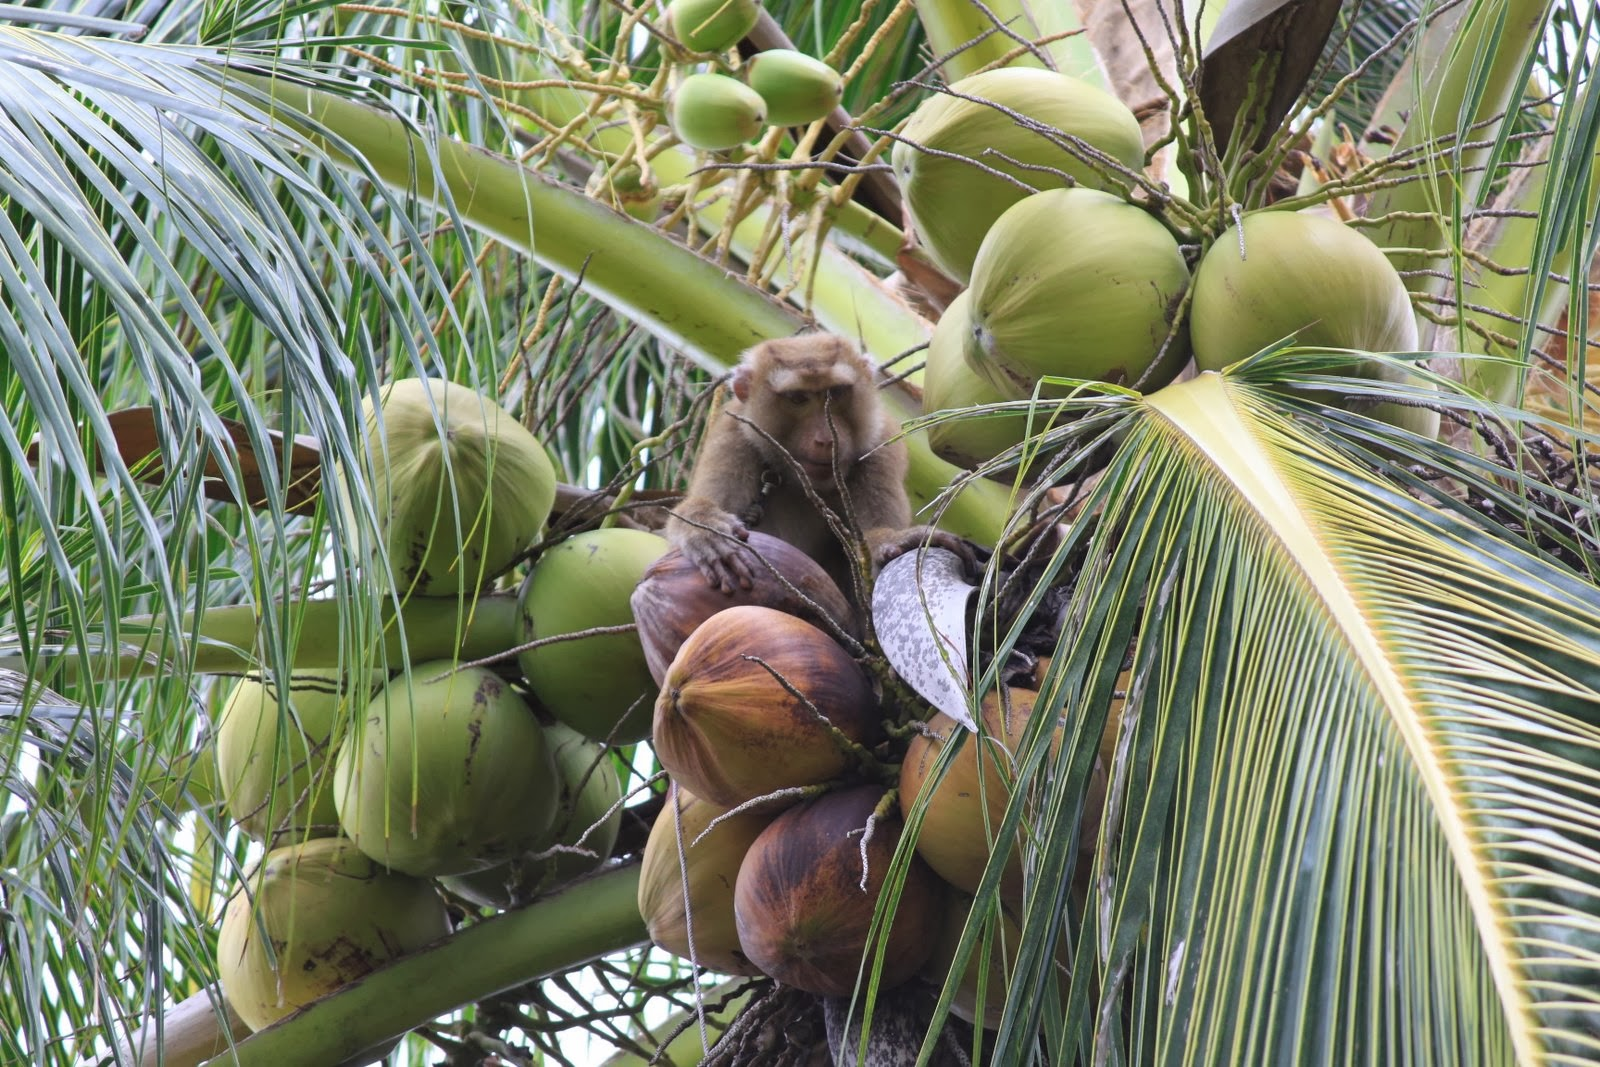 Monkeys Picking Coconuts On The Trees